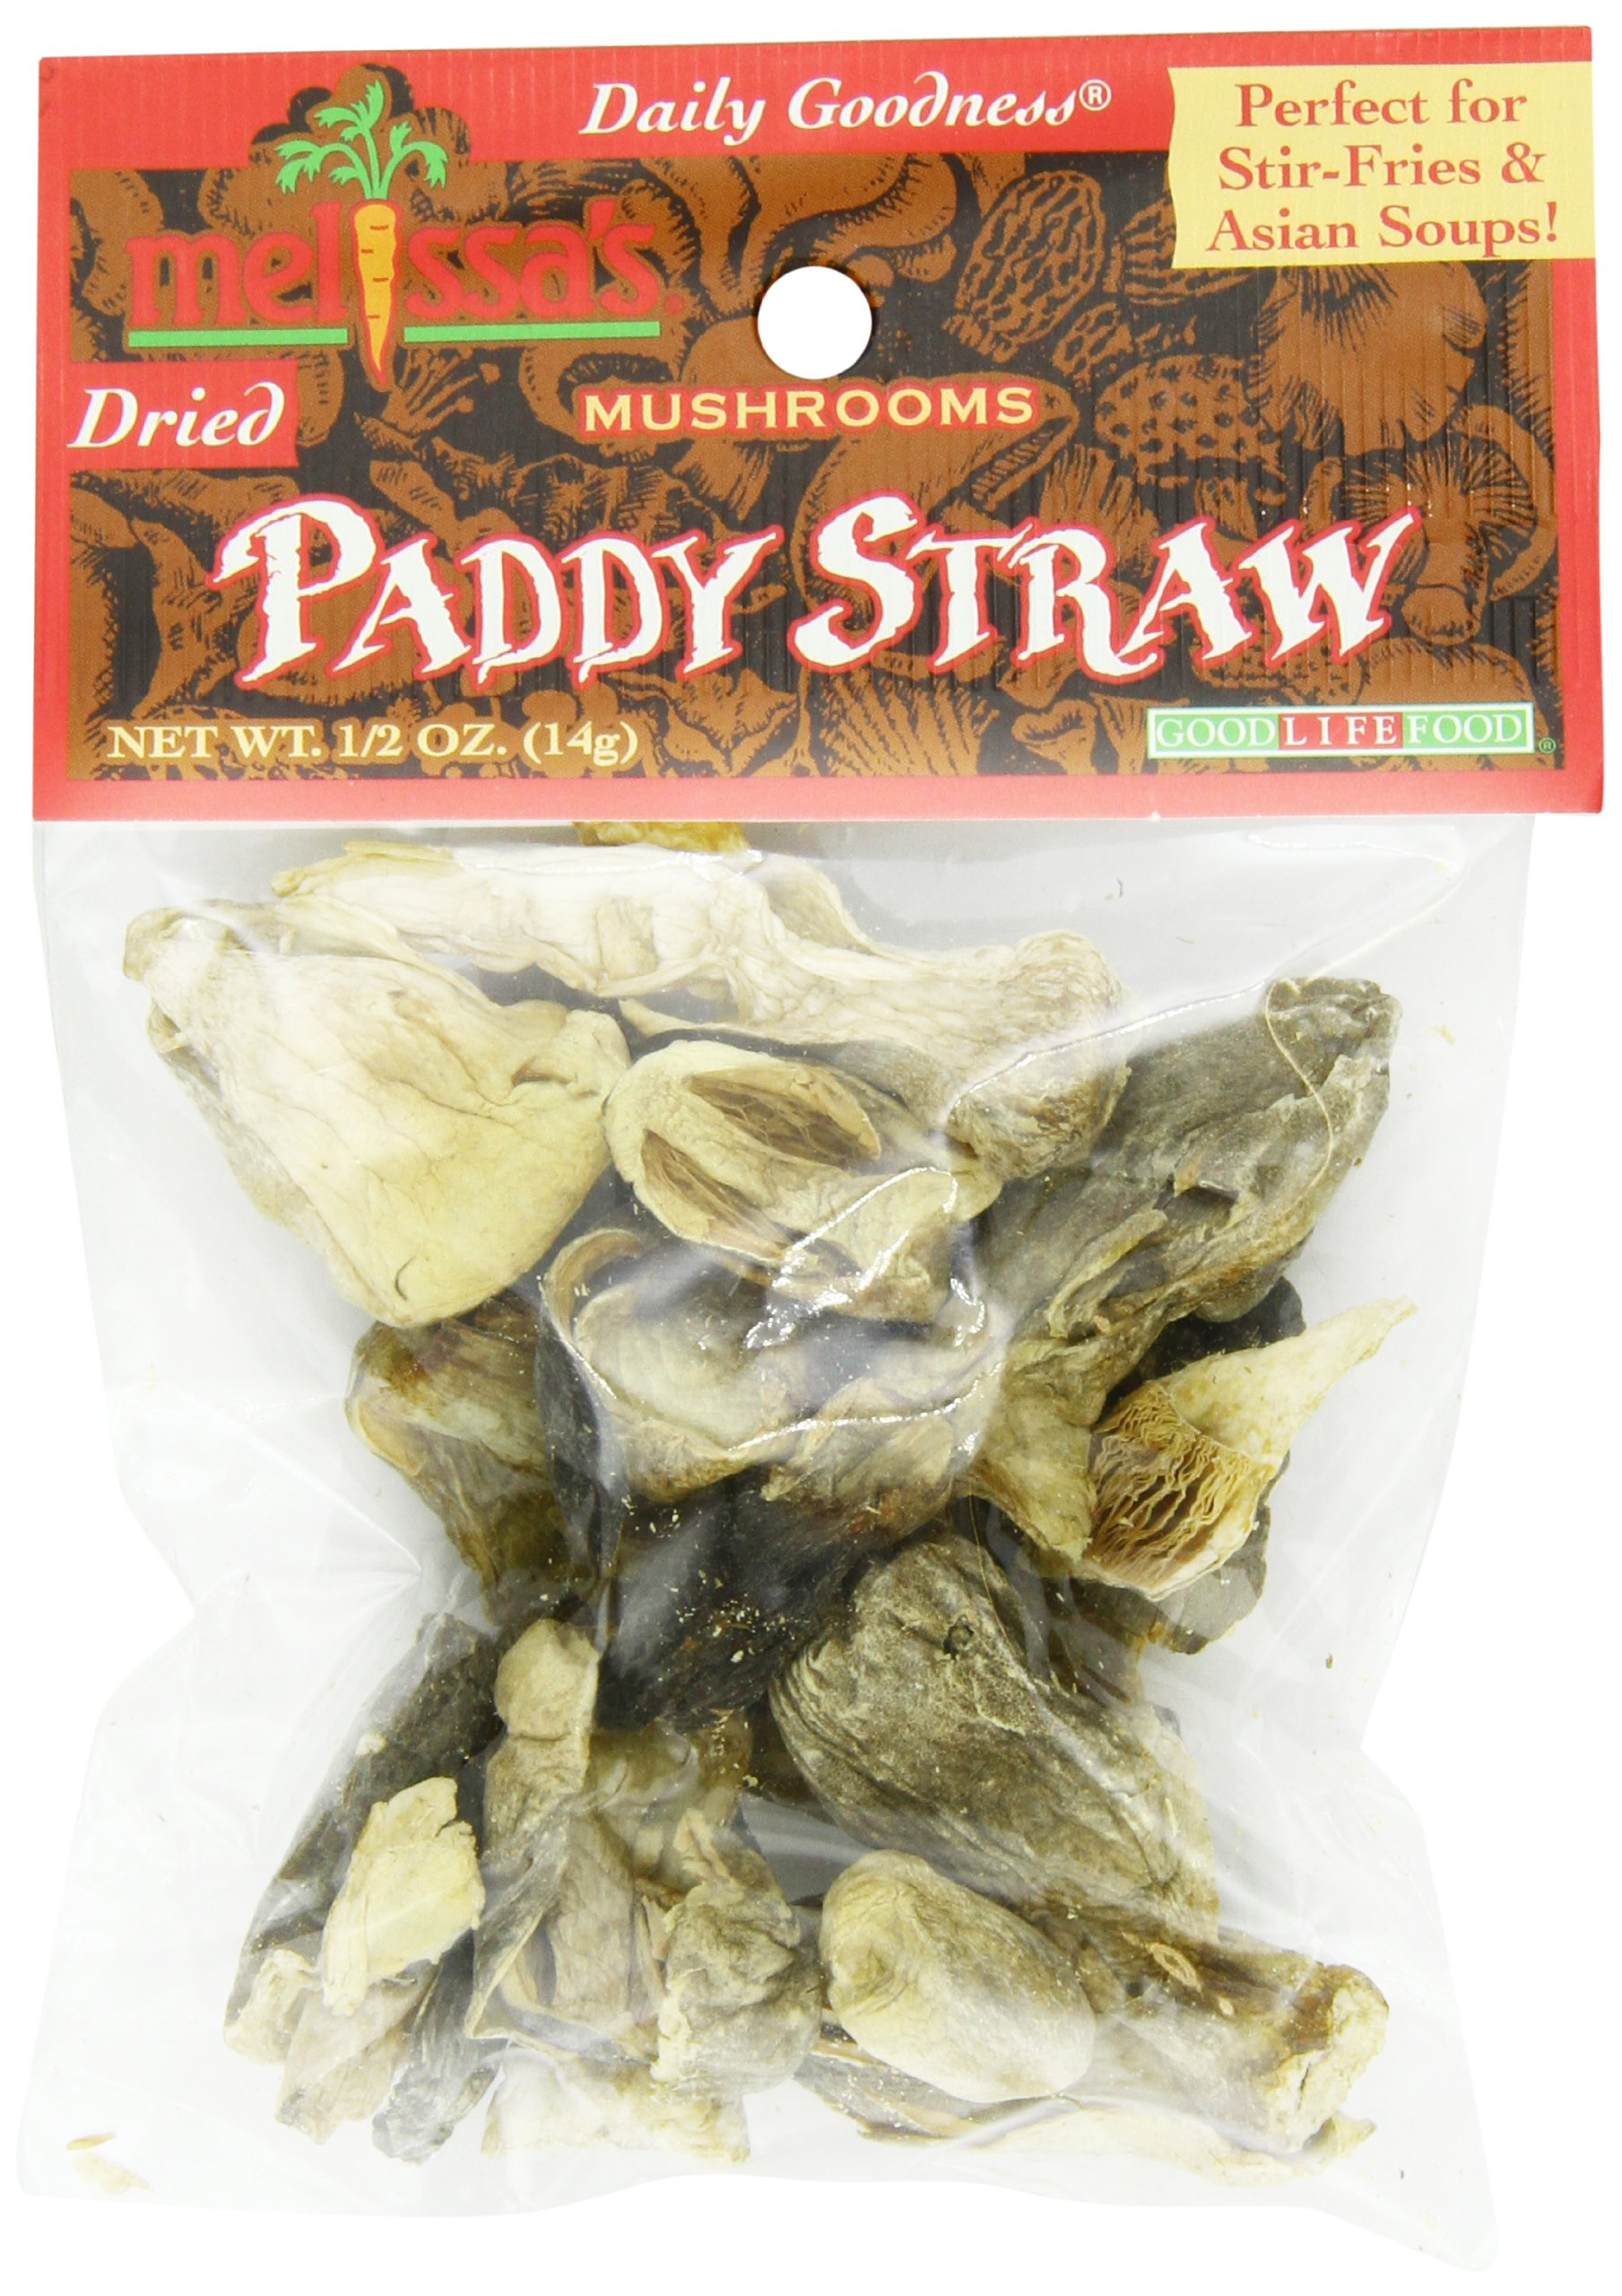 Melissa's Dried Patty Straw Mushrooms 0.5-Ounce Bags (Pack of 12), Dried Wild Mushrooms, Rehydrate and Cook as Fresh or Grind for Crusting Fish or Veal, Great for Cooking and Making Stocks by Melissa's (Image #5)